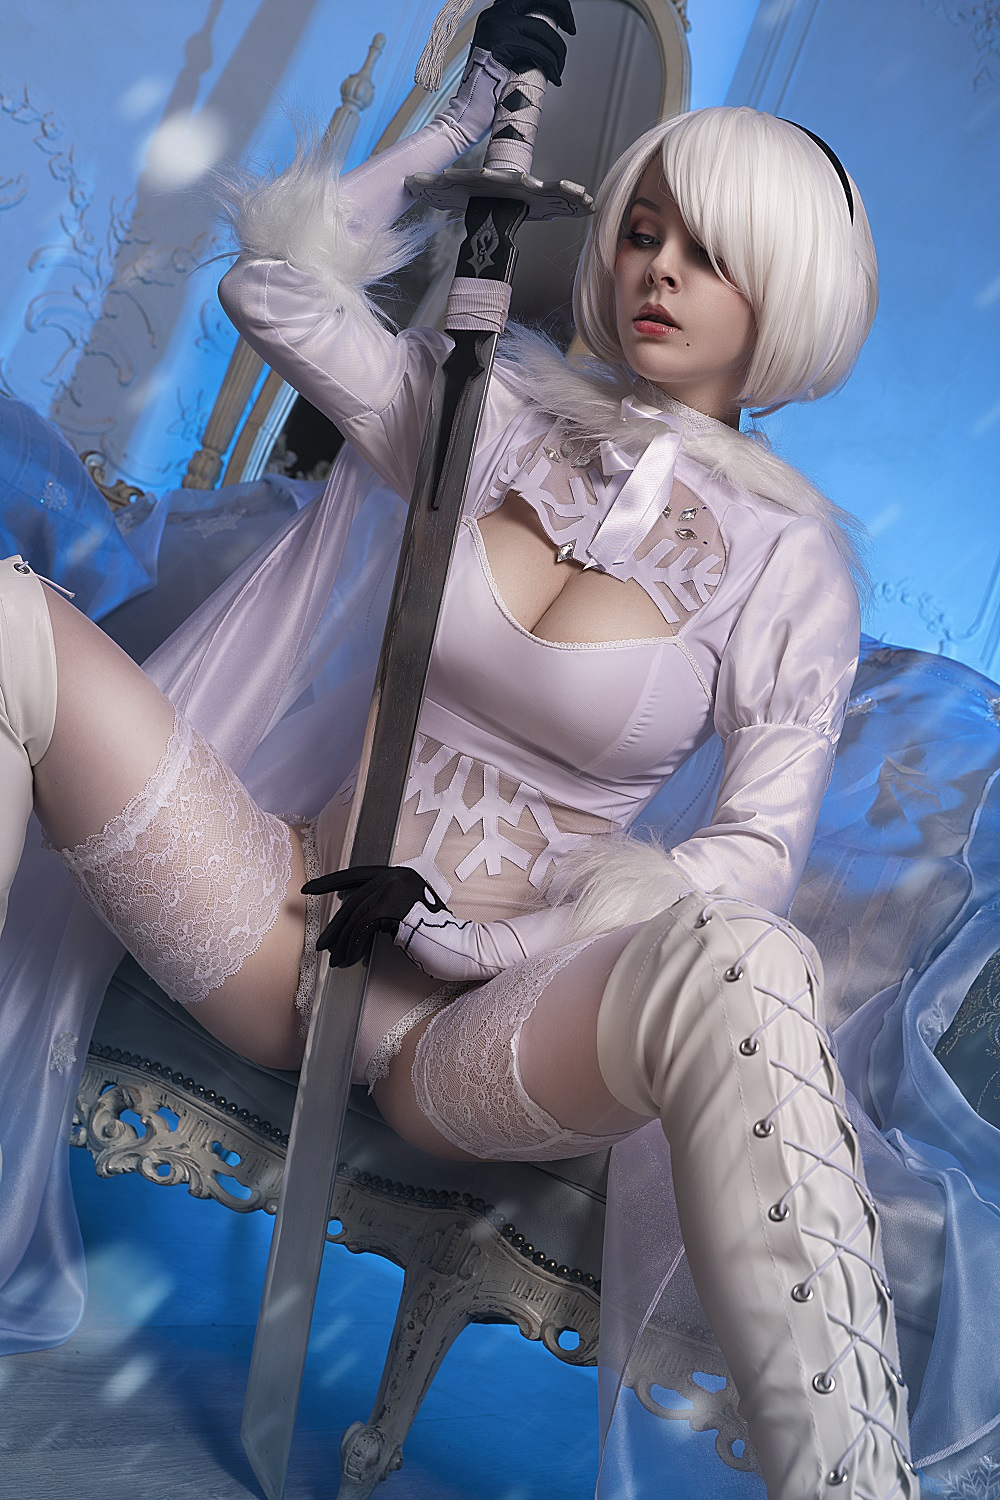 Helly Von Valentine Disharmonica sexy and nude cosplay as 2B Nier Automata